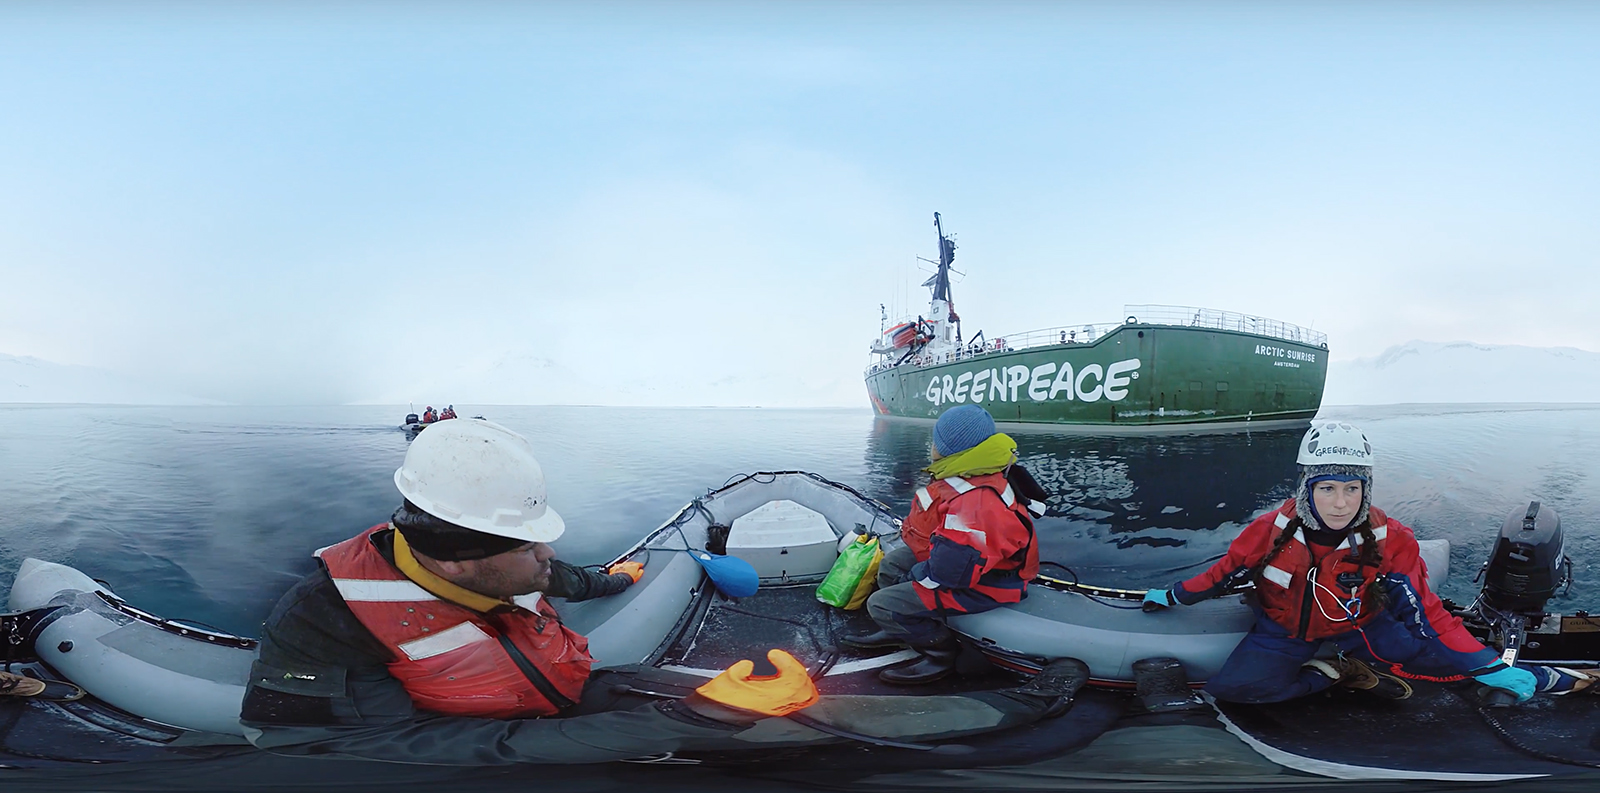 equirectangular-view-greenpeace-boat-and-crew-lr